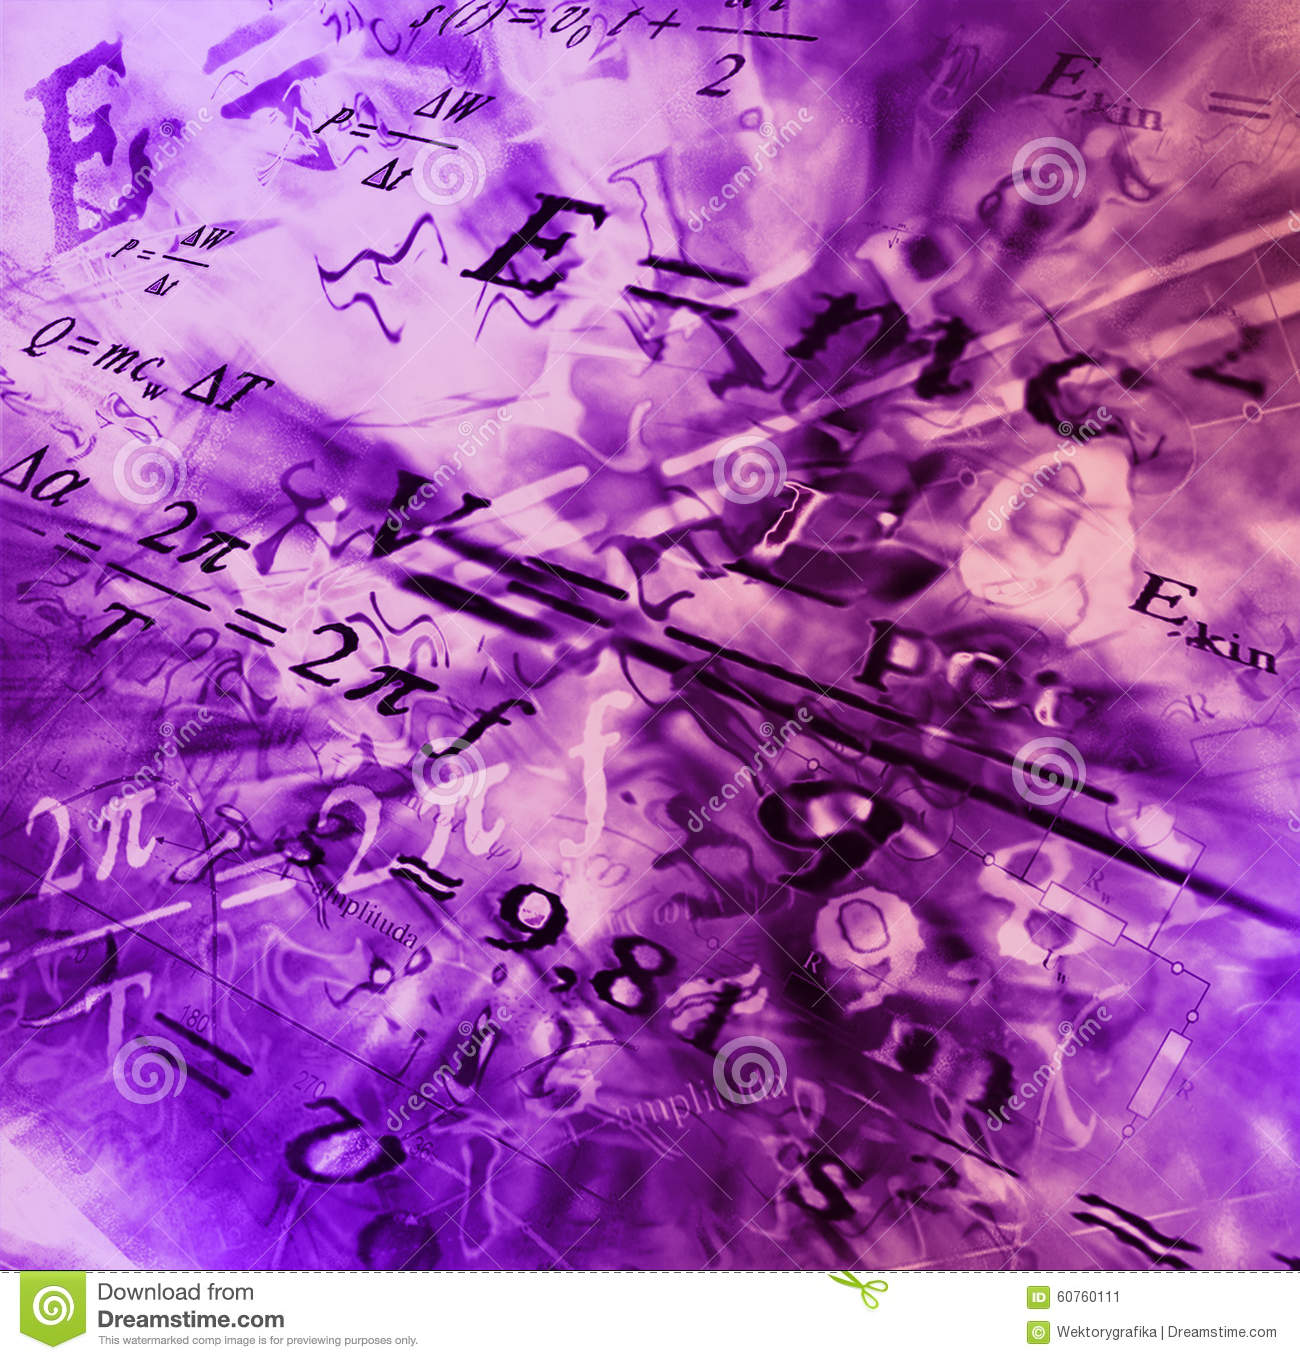 image of physical technology abstract background science